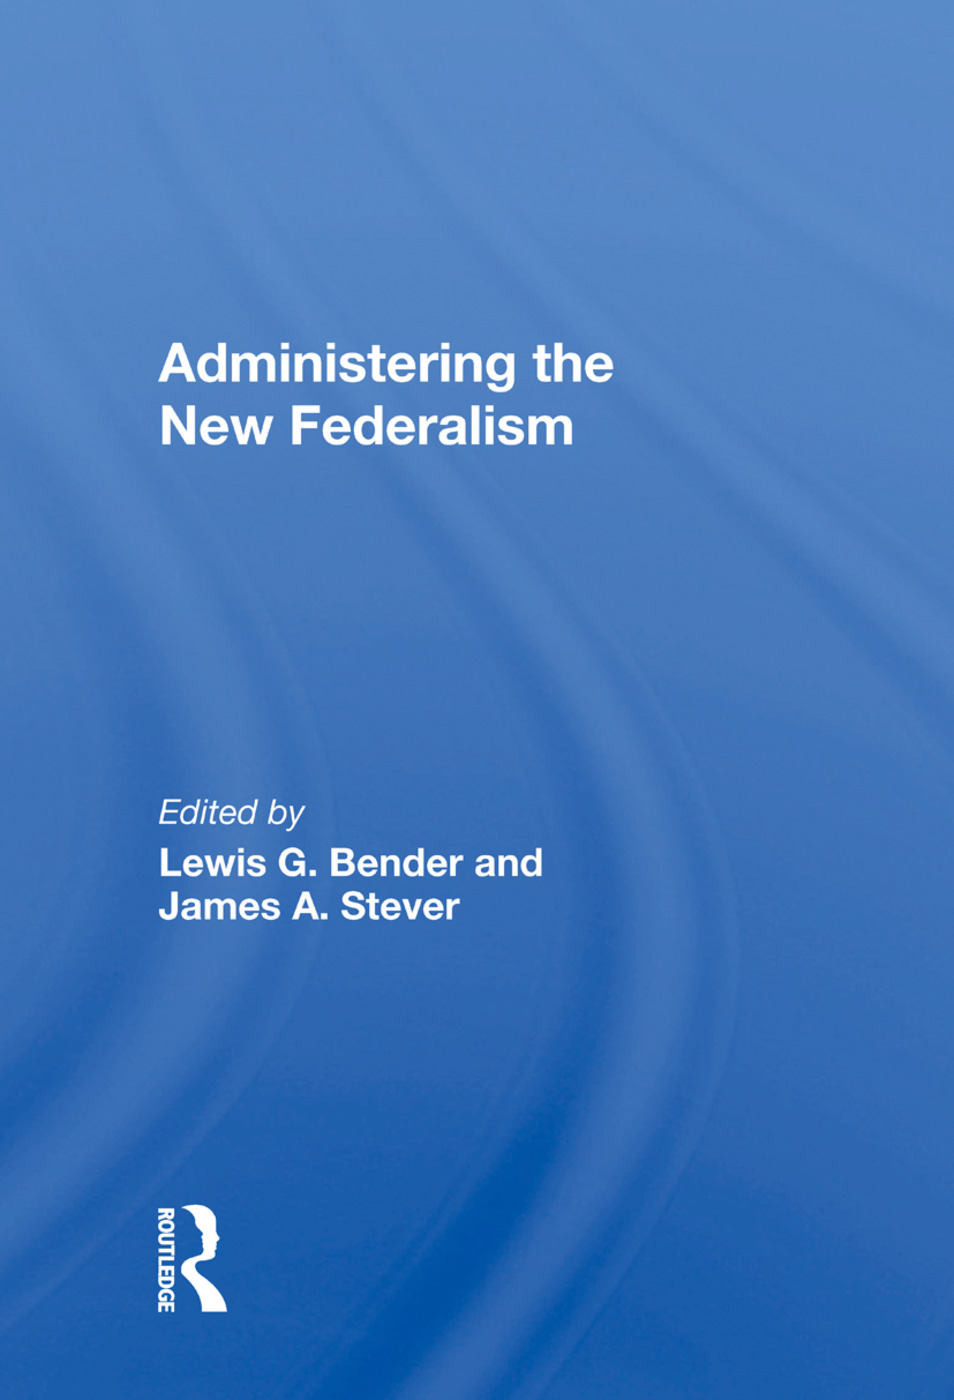 Administering the New Federalism